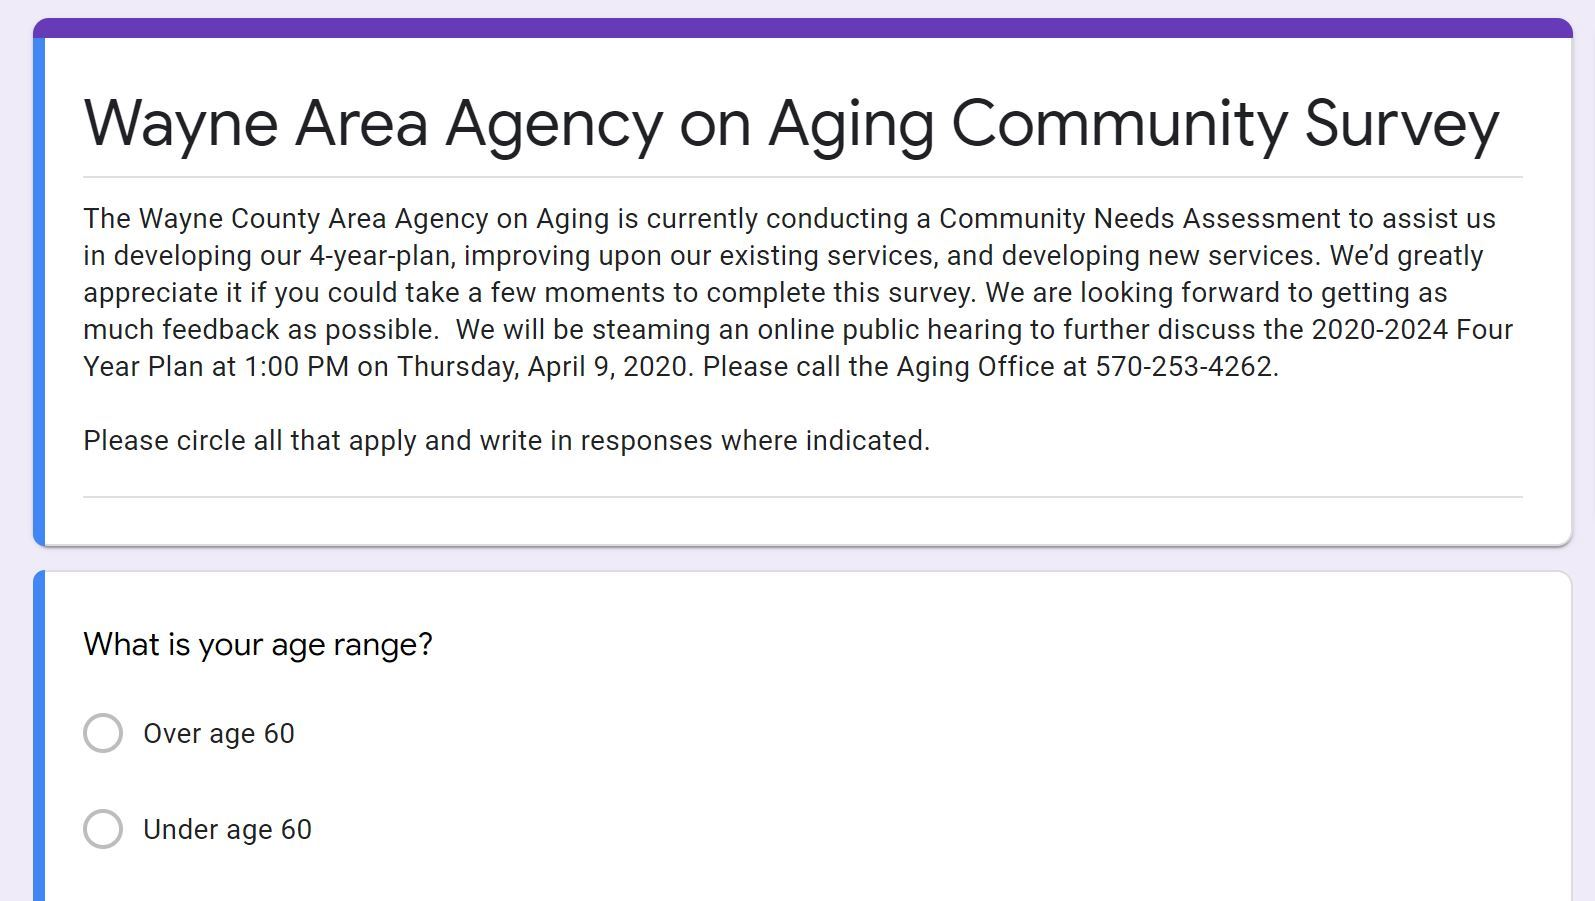 An image of the beginnig of the Area Agency on Aging's Community Surey.